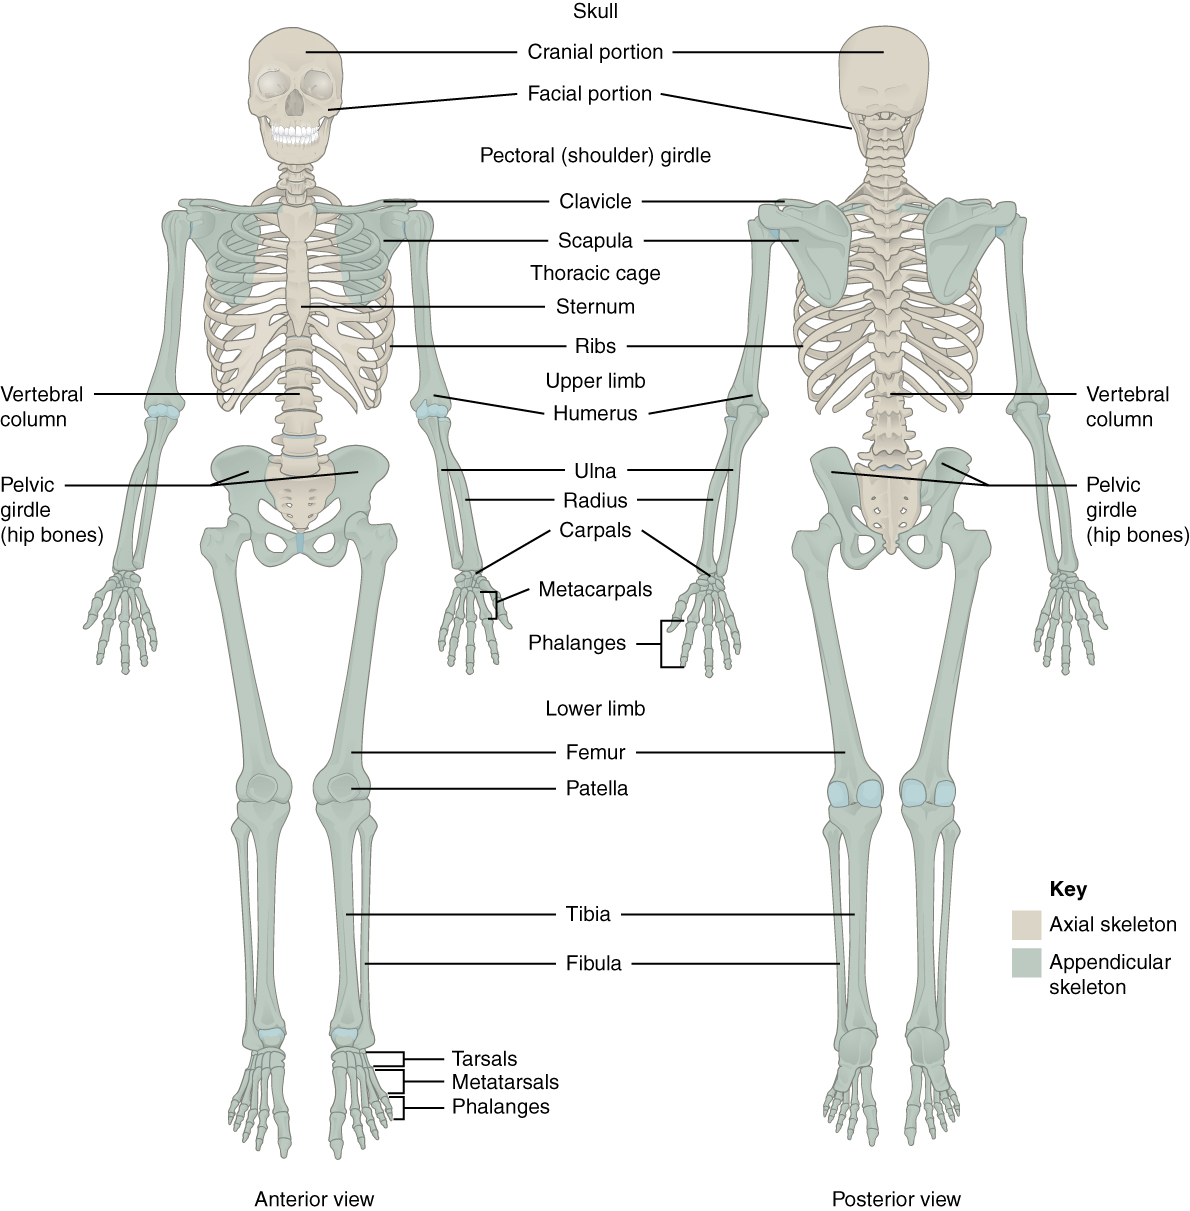 8.1 The Pectoral Girdle – Anatomy and Physiology